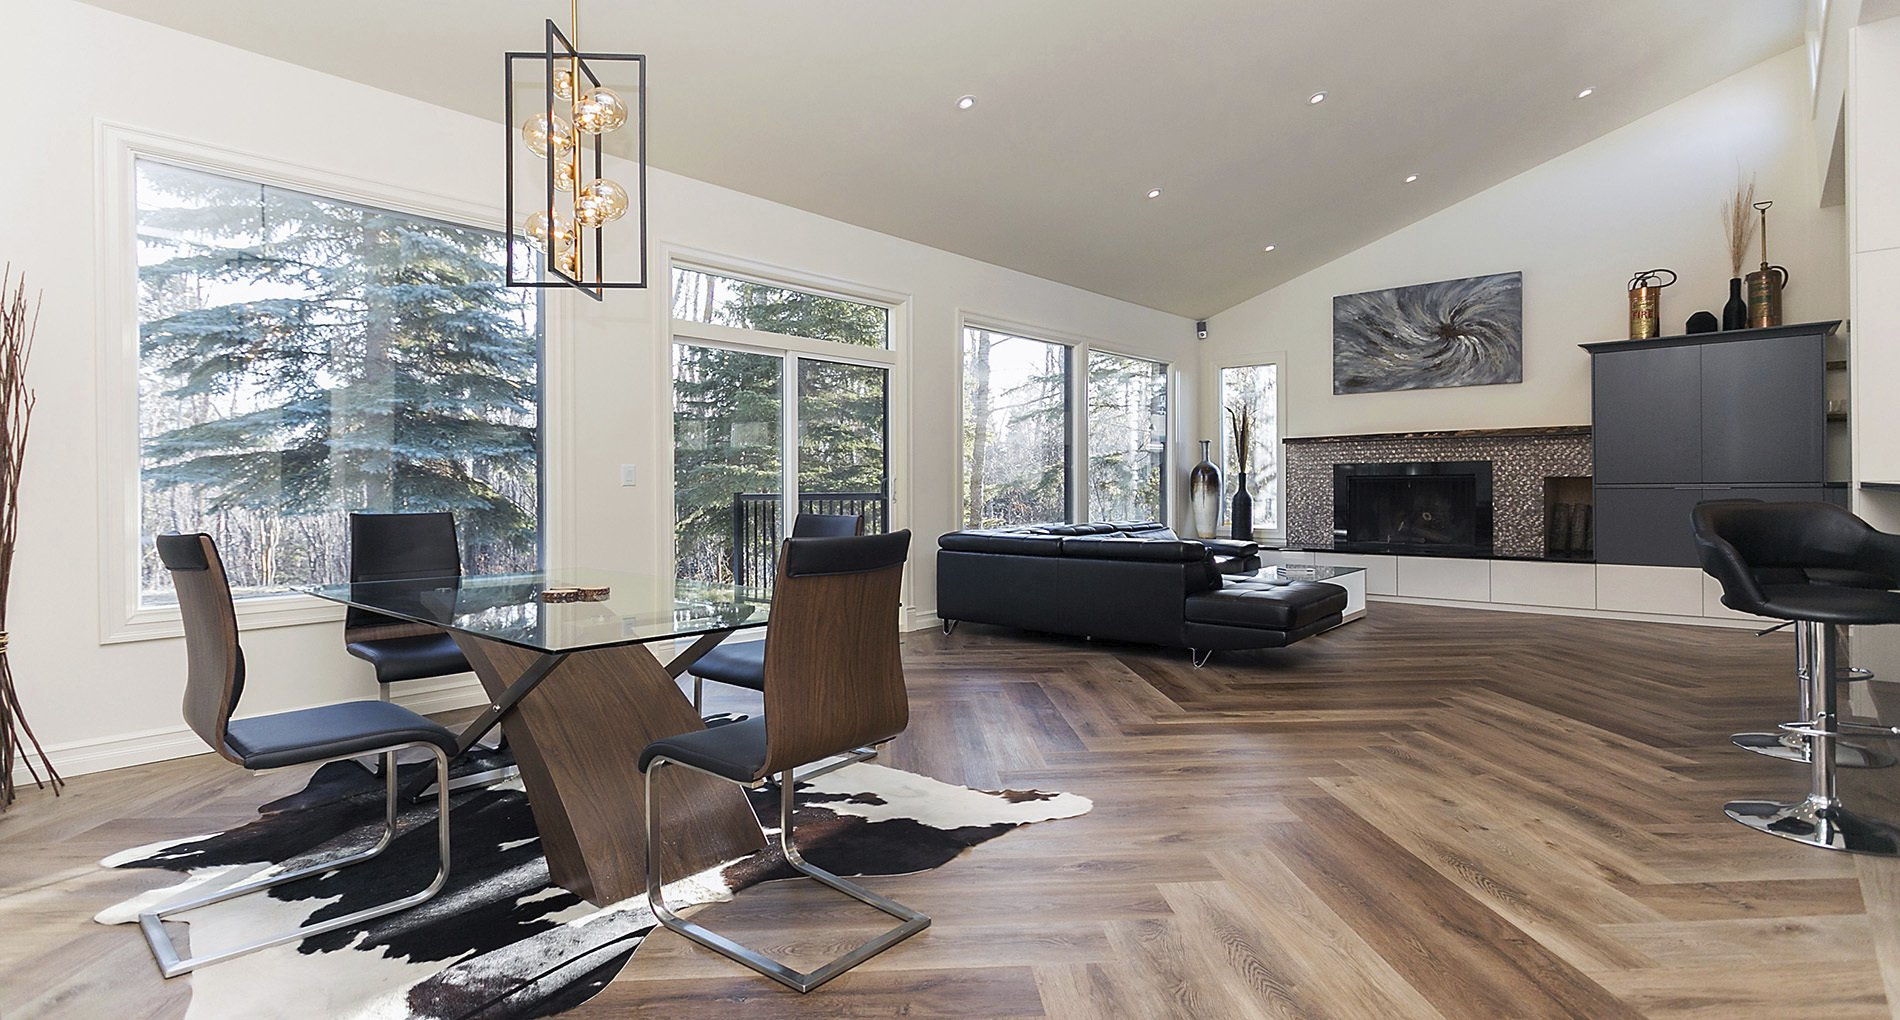 Modern custom living space with patterned wood flooring, a fireplace and big windows.